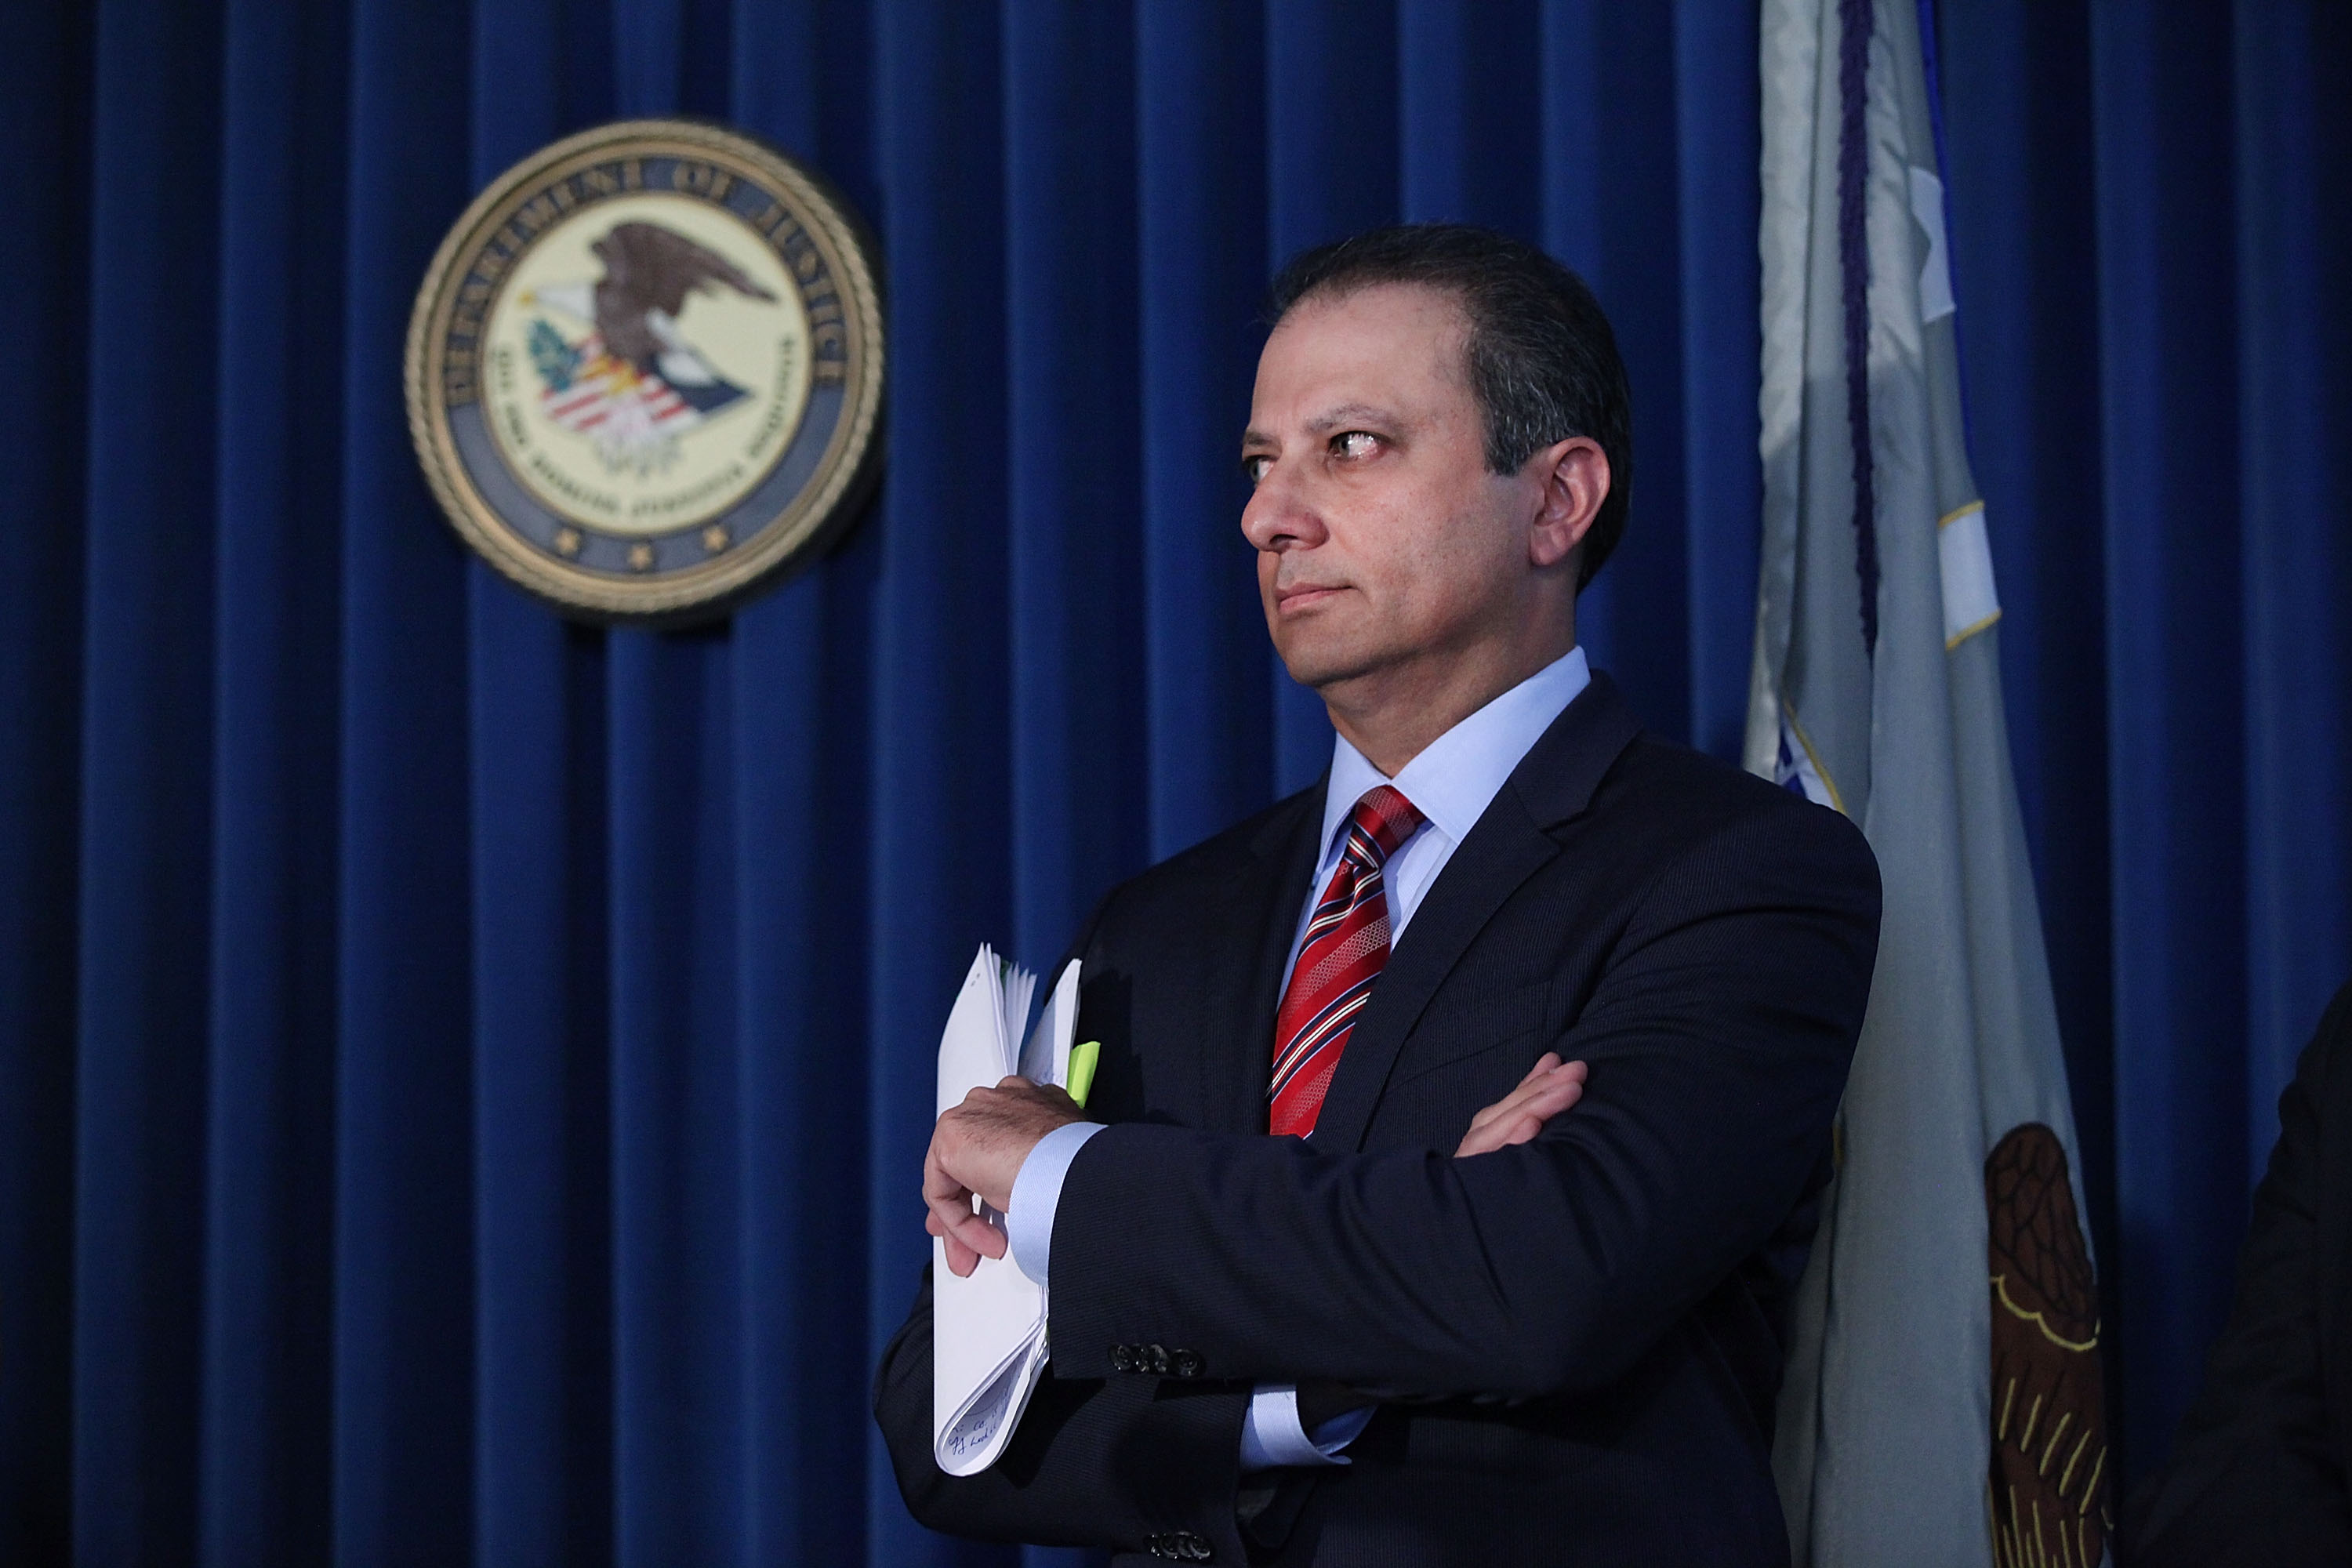 Manhattan U.S. Attorney Preet Bharara in September. (Photo by Spencer Platt/Getty Images)